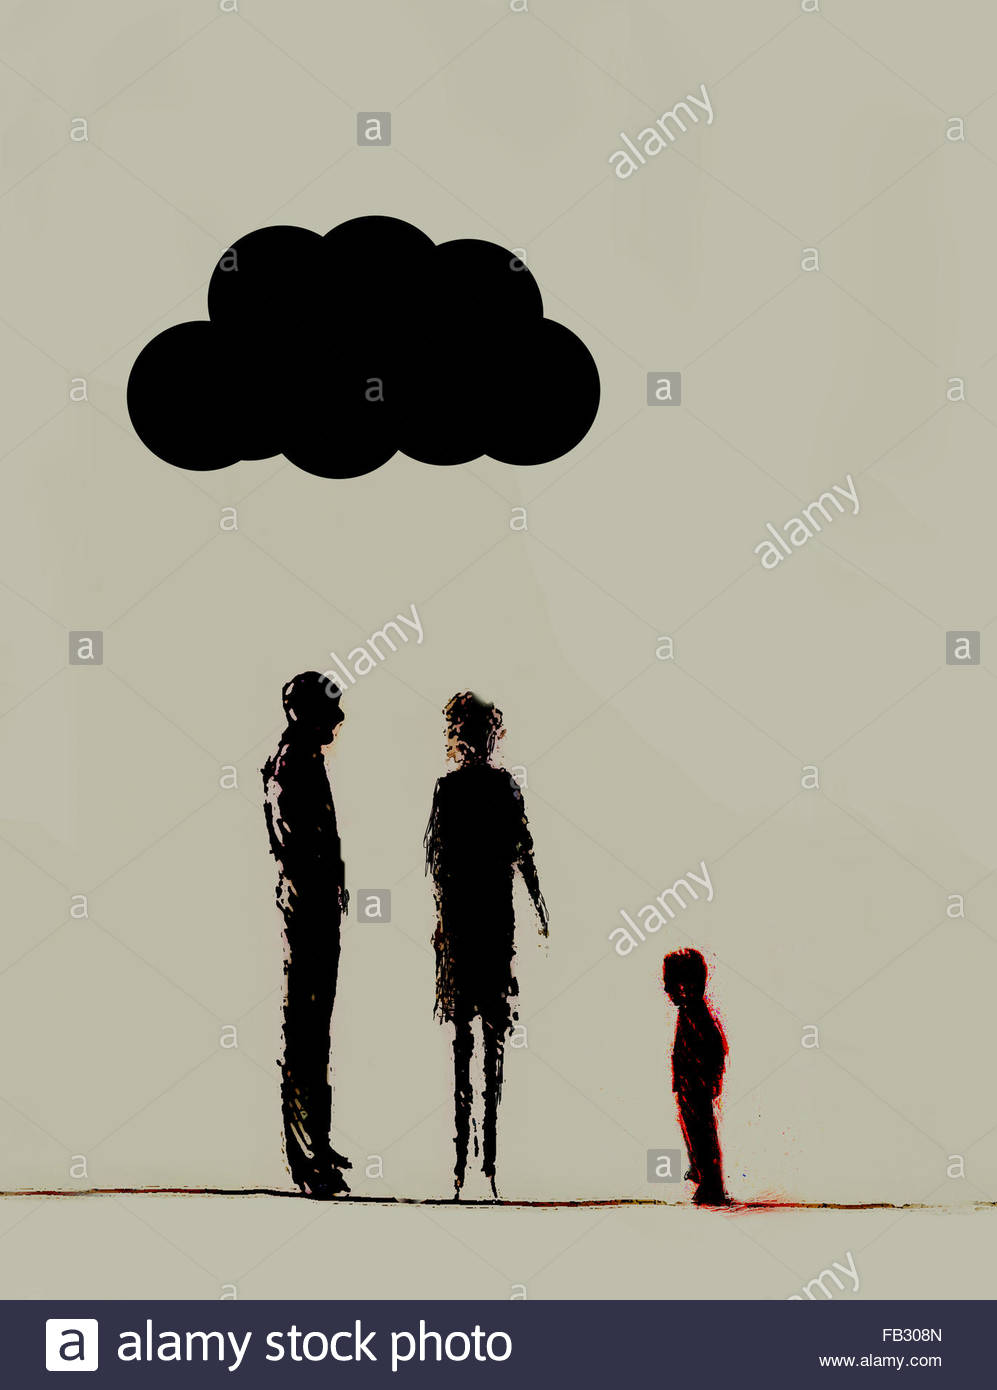 Storm cloud over parents looking at child - Stock Image